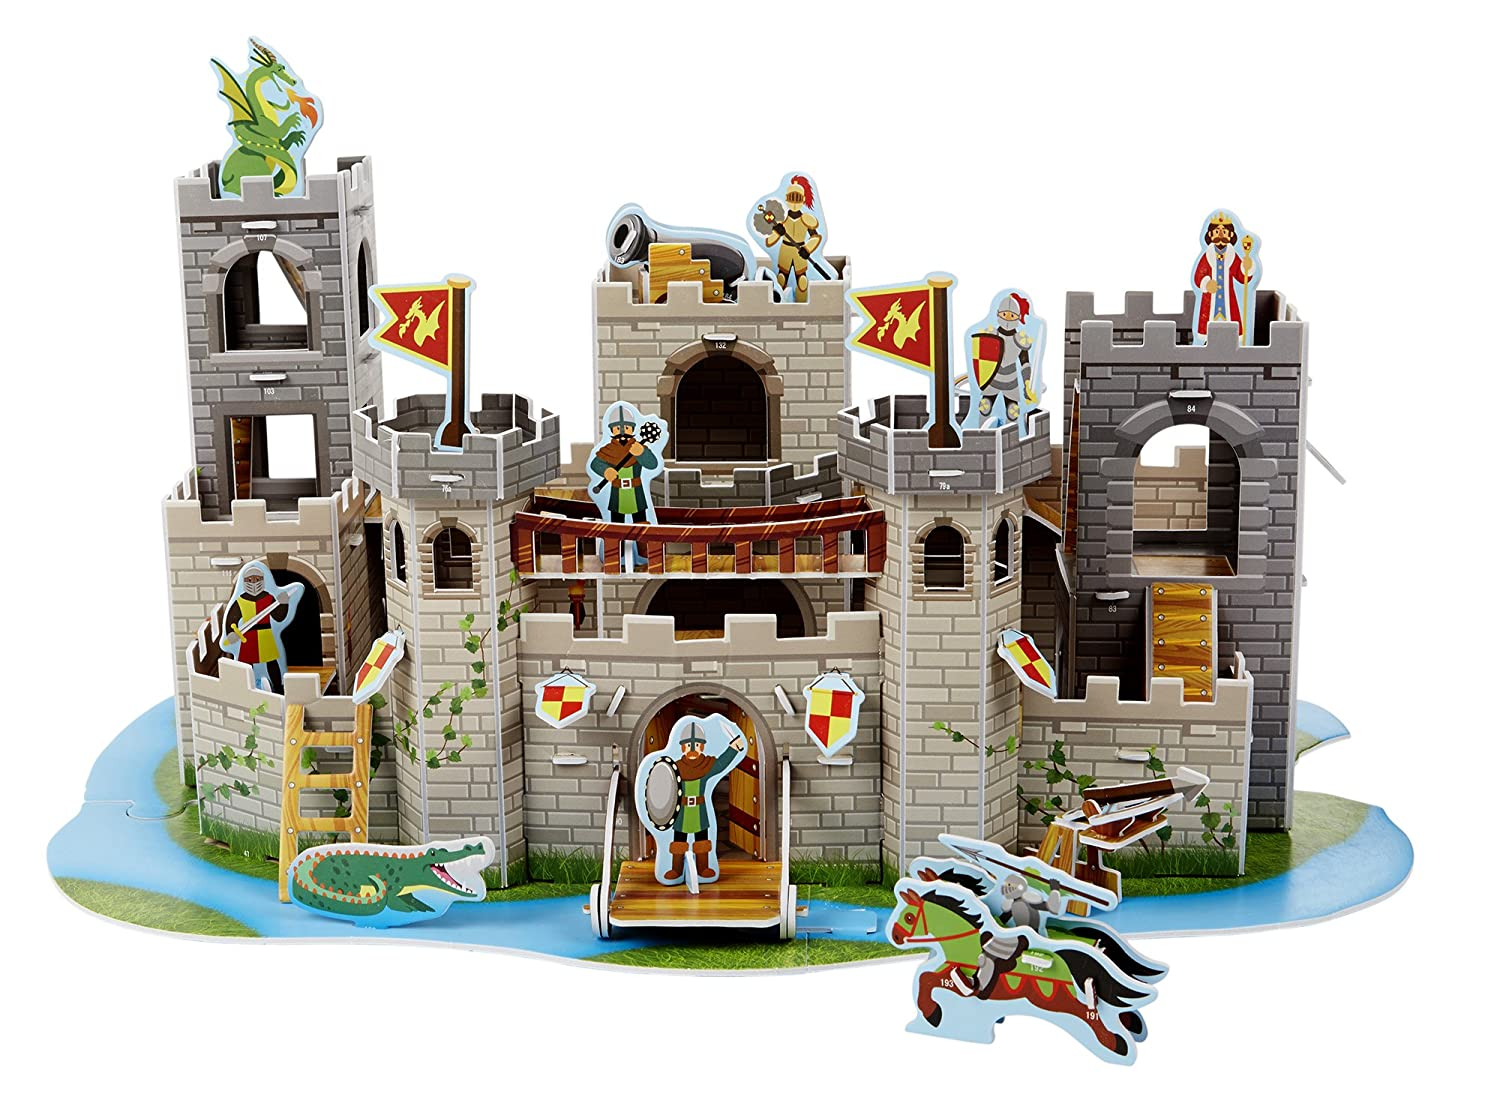 Melissa & Doug Medieval Castle 3-D Puzzle and Play Set - Dragon and Knights (100 pcs) Game Melissa and Doug 9046